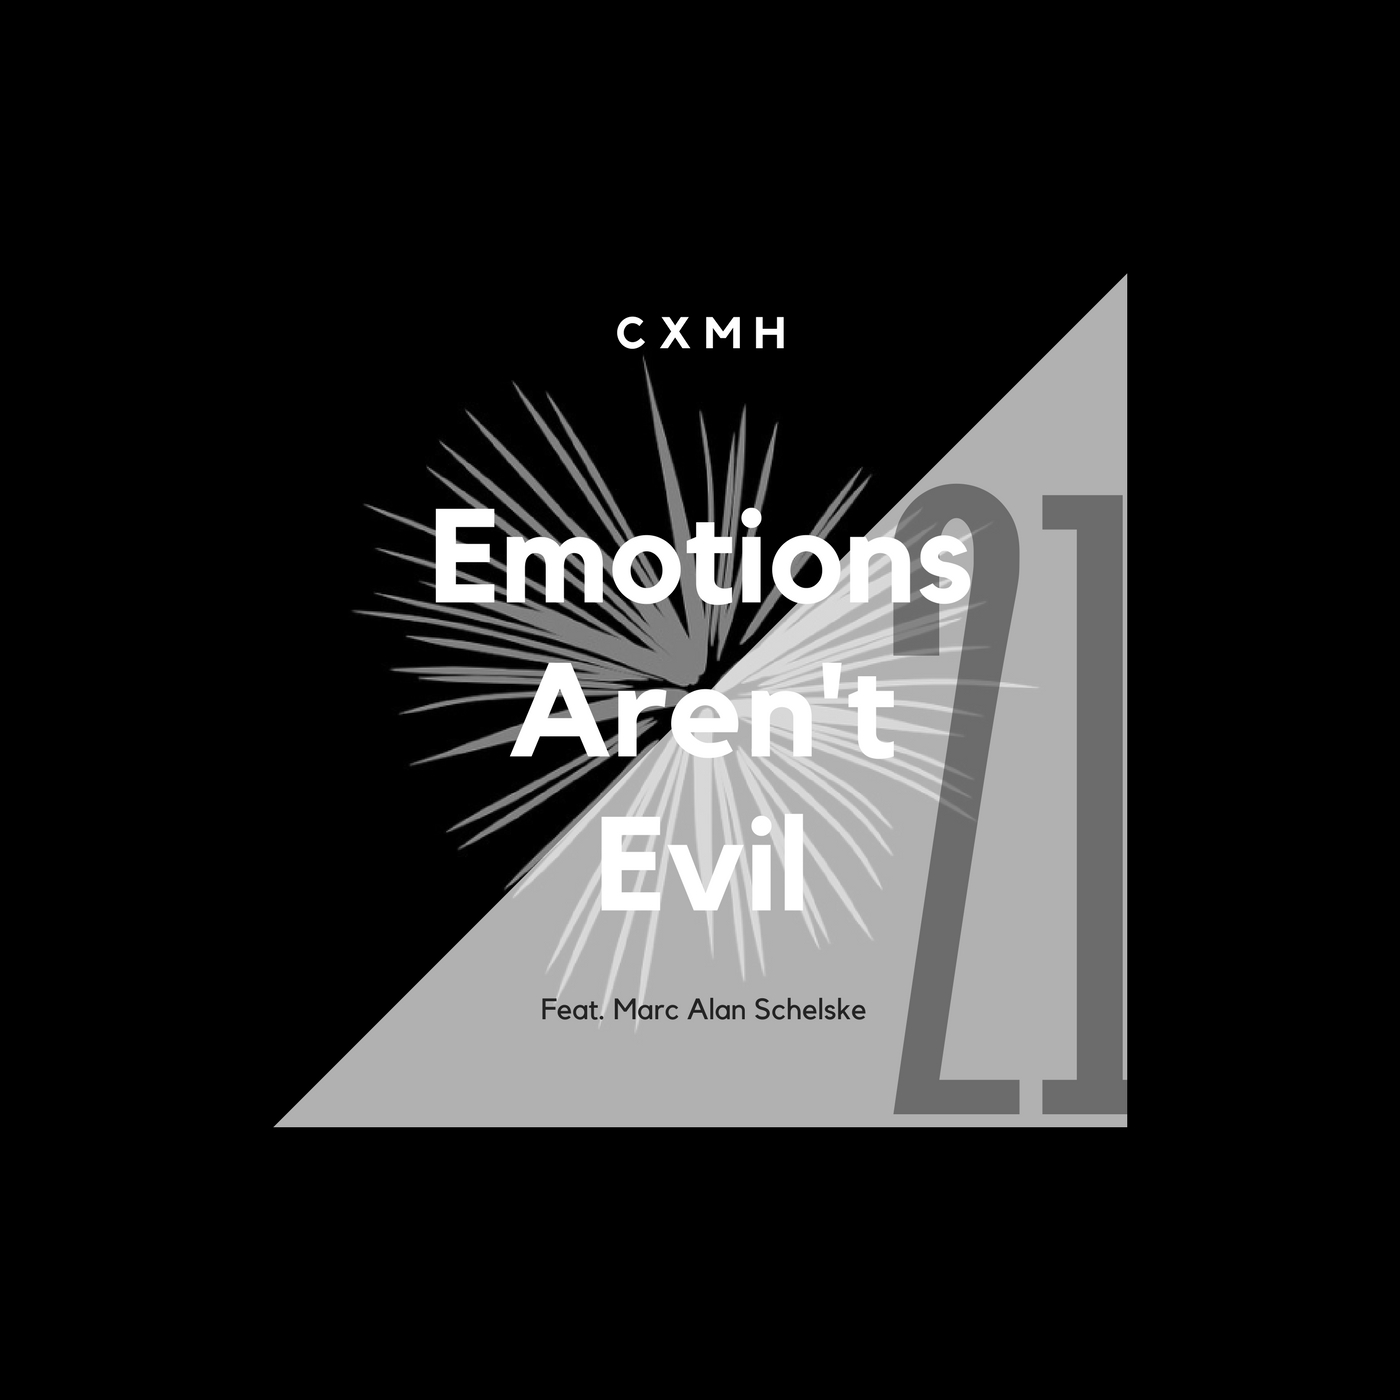 CXMH - Main Episodes (31).jpg